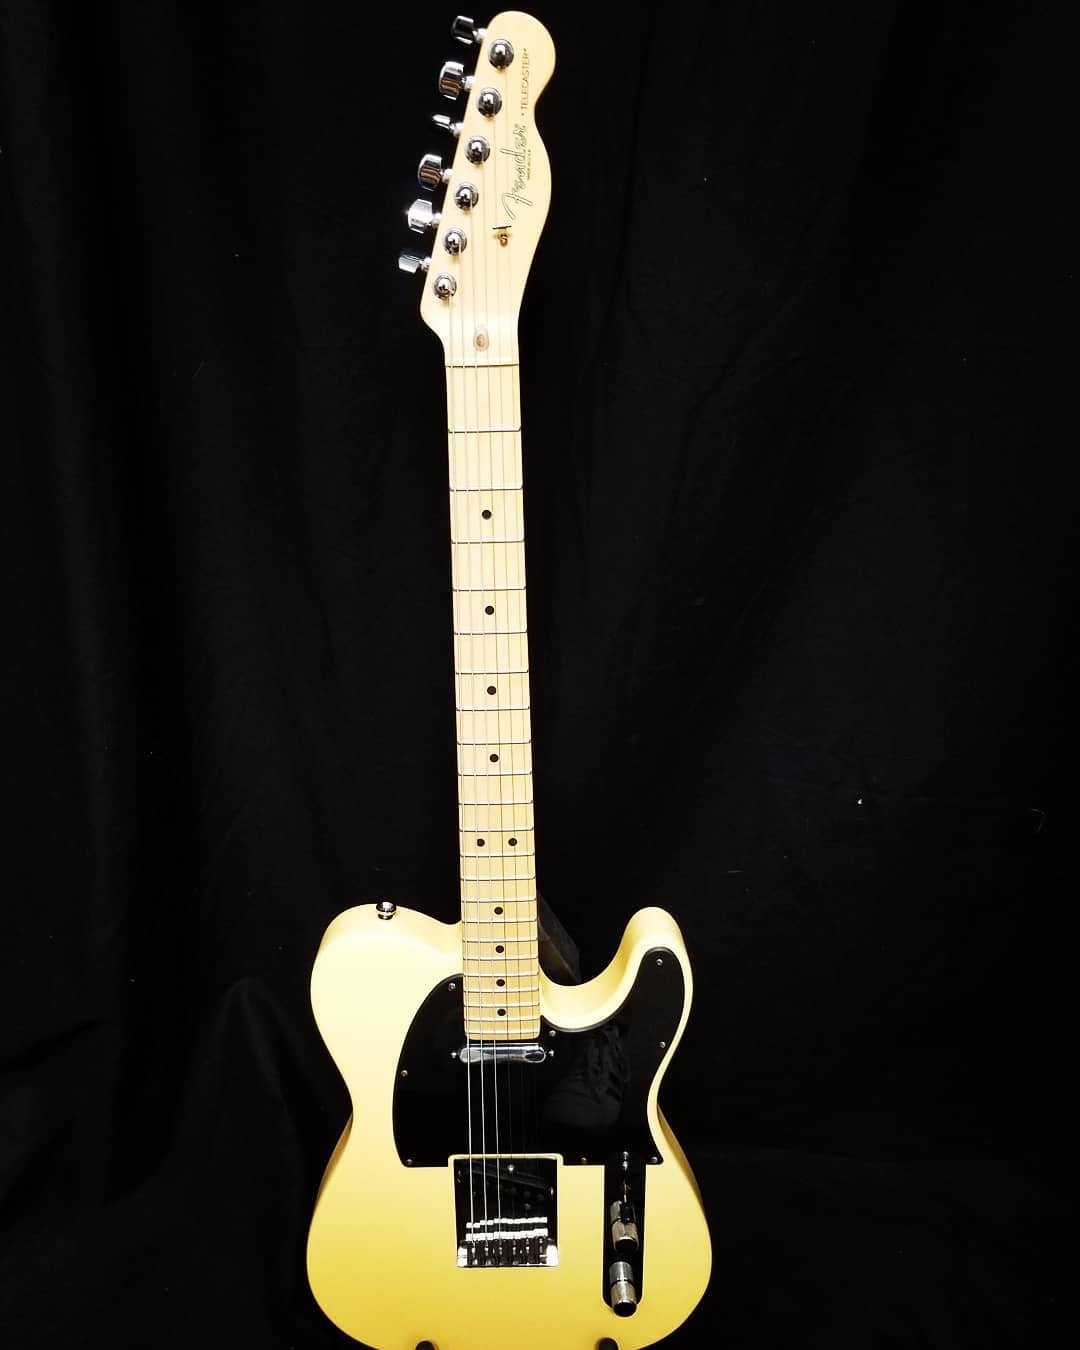 Used (Consignment) Fender American Standard Telecaster (05'-06')